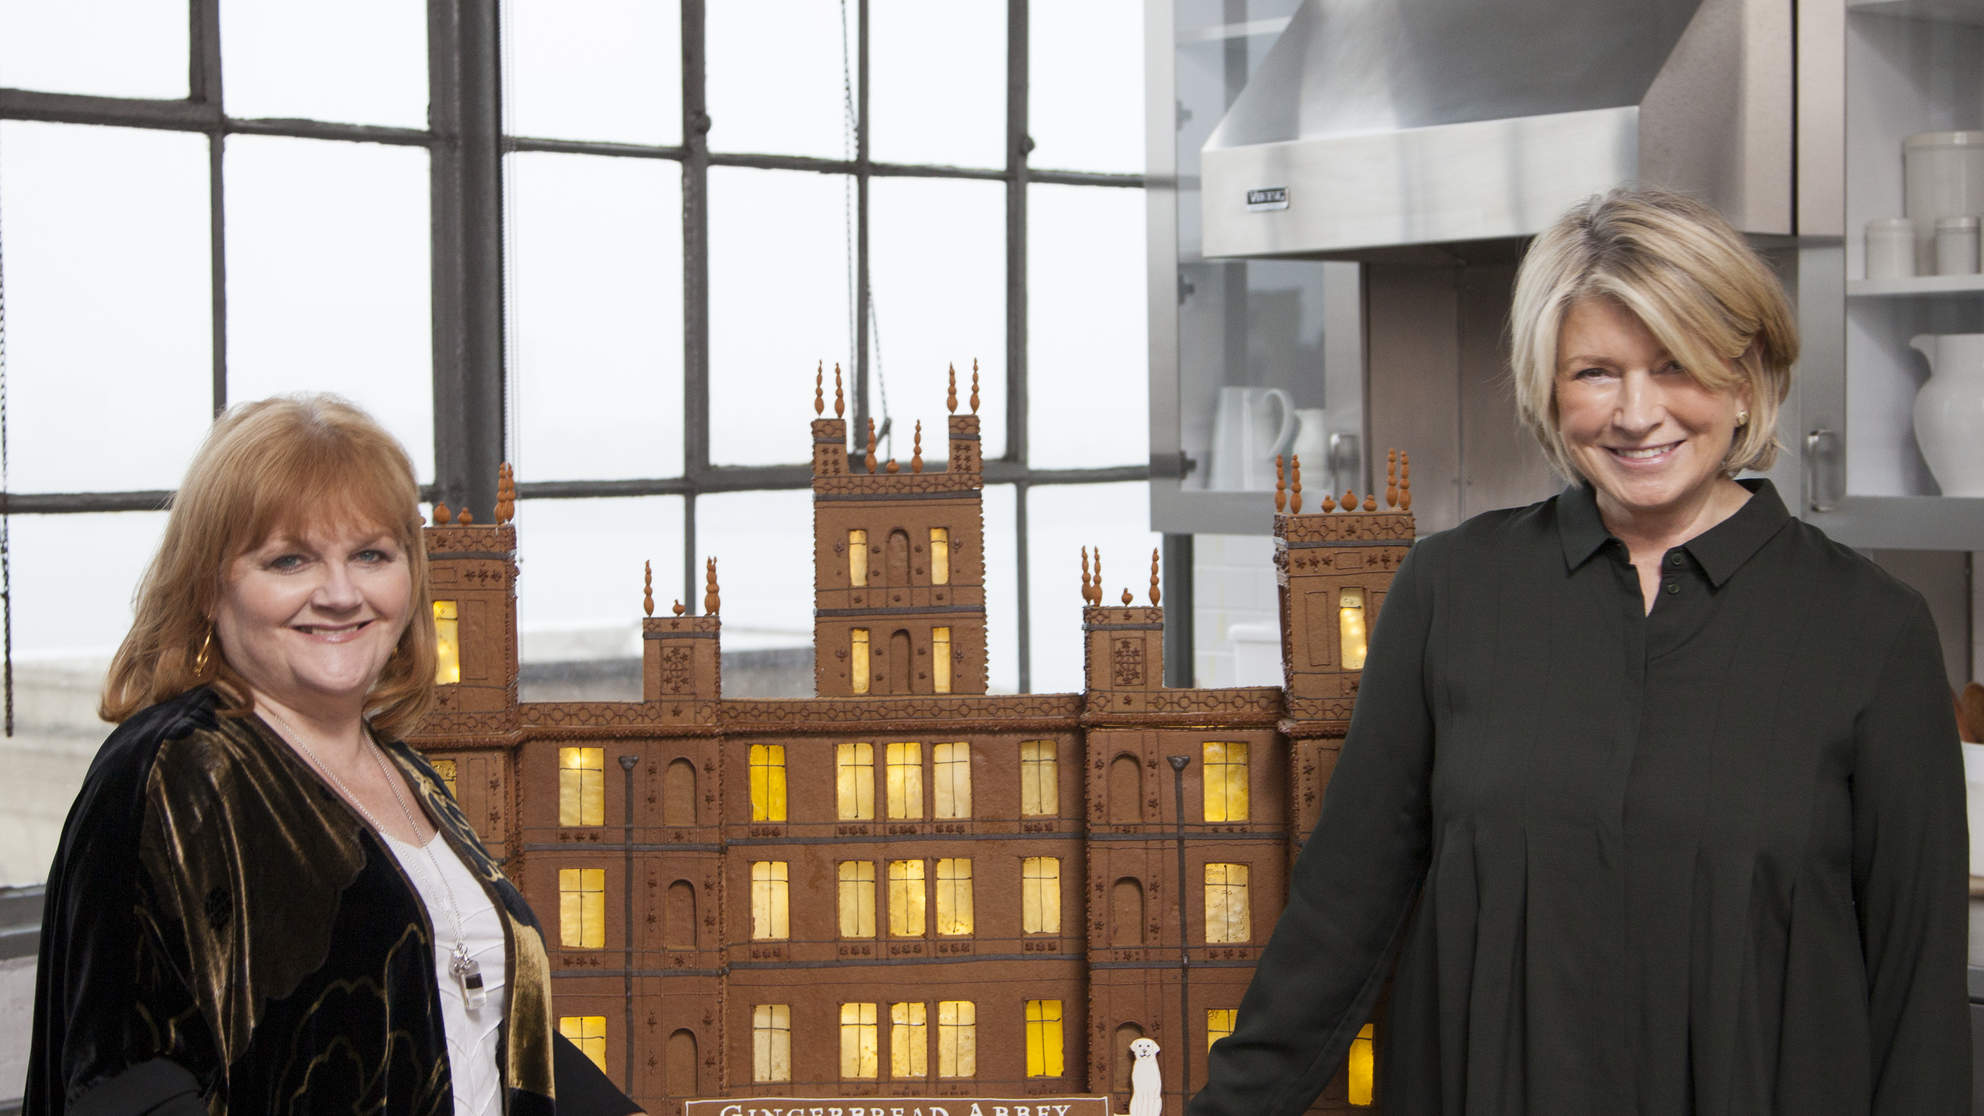 Martha Stewart Makes Gingerbread Version of Downton Abbey for 'Mrs. Patmore'